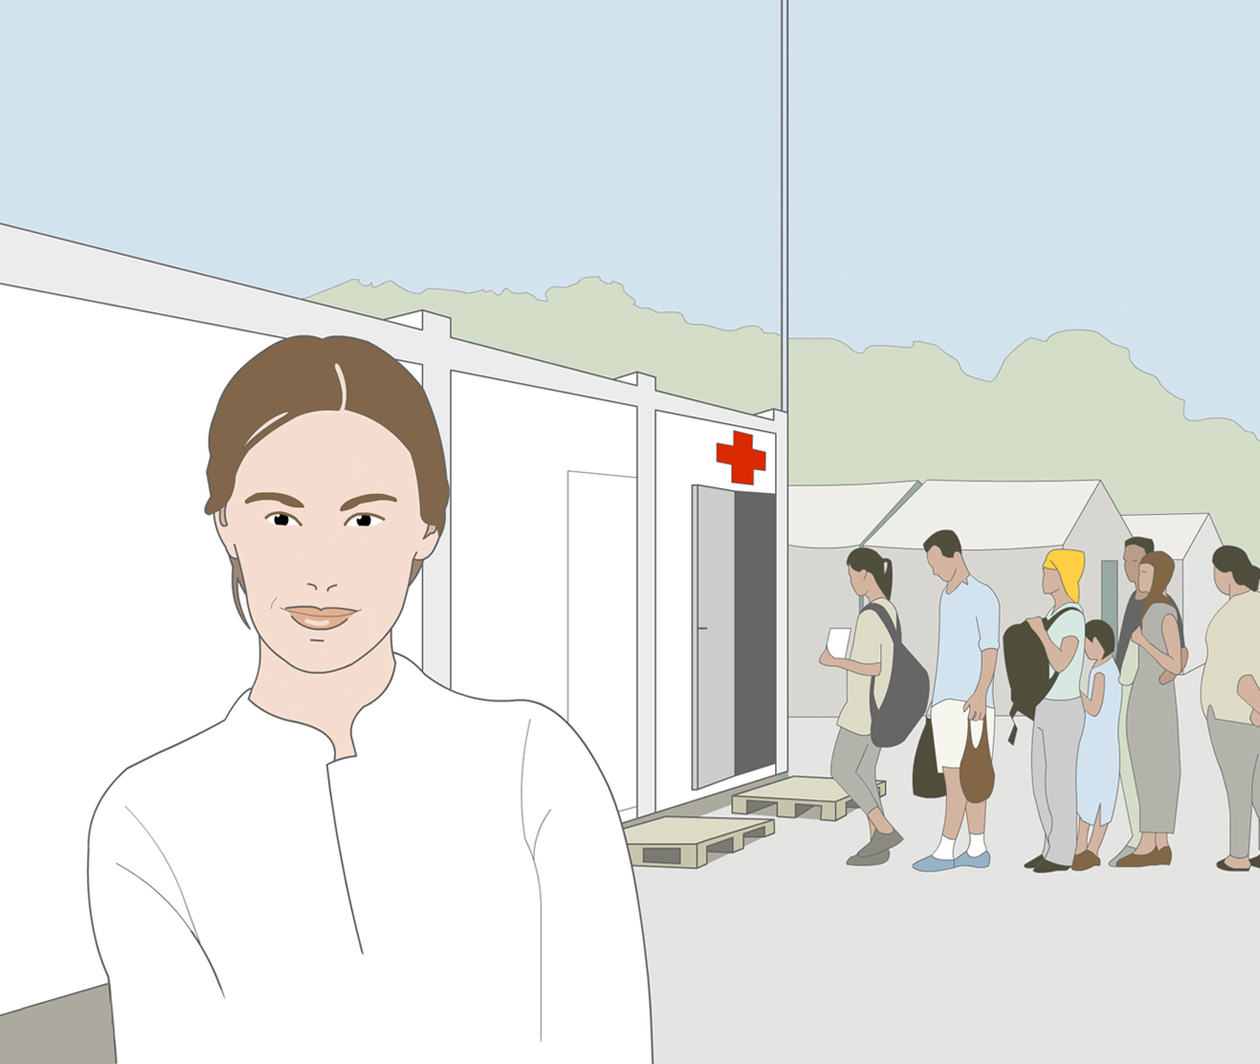 Addressing Violence Through Patient Care